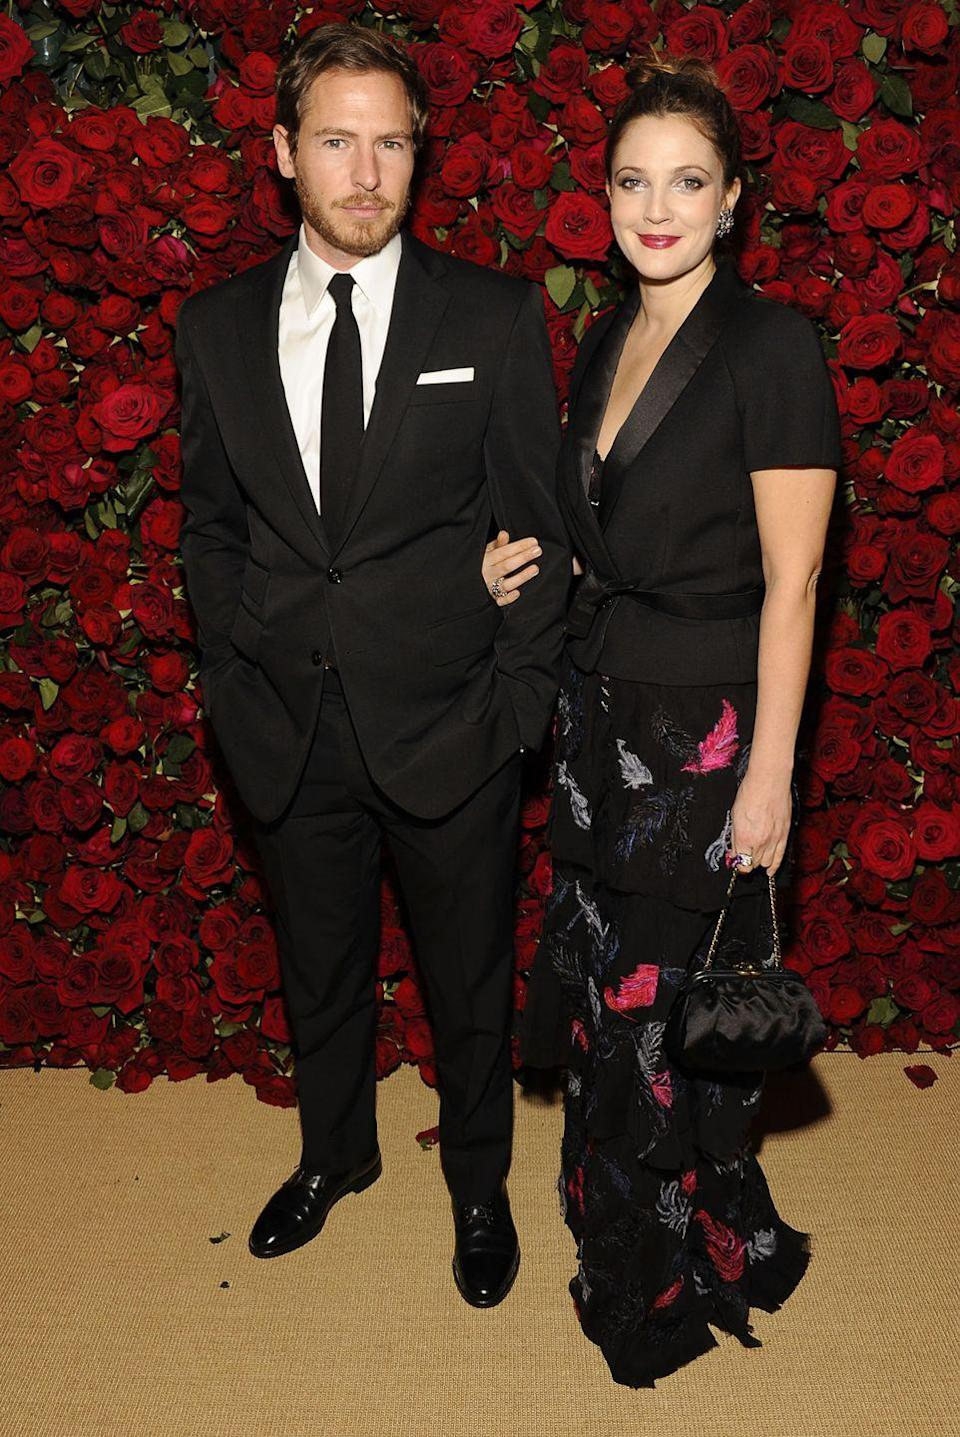 <p>Will Kopelman is an art consultant in New York, so the couple was bi-coastal throughout their relationship. They got married in 2012, but sadly divorced in 2016. However, they remain friendly to coparent their daughters Frankie and Olive together.</p>